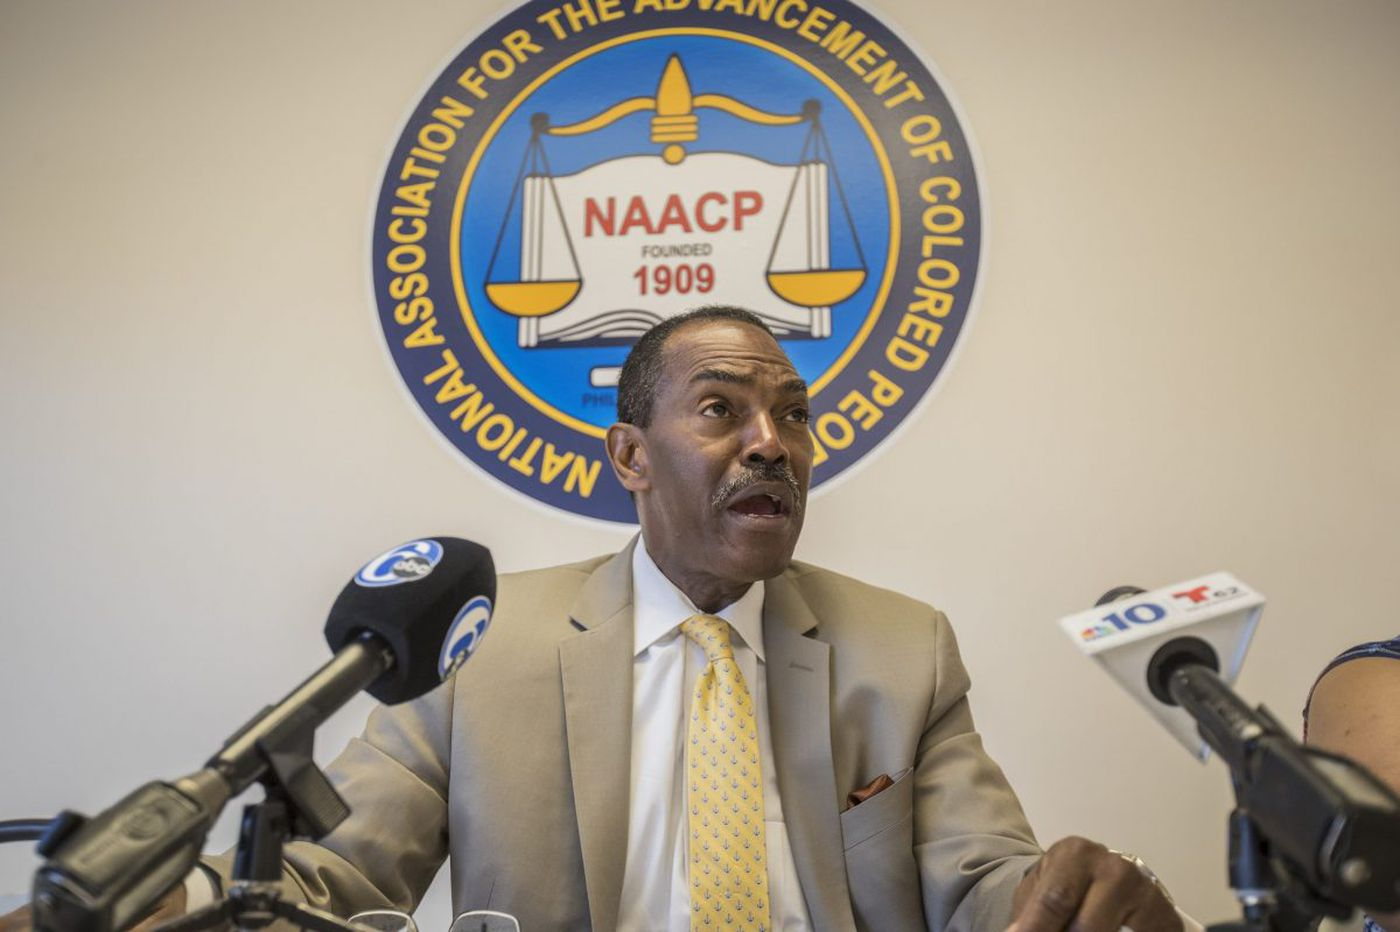 Black and Jewish leaders blast the NAACP's Philly president for an anti-Semitic Facebook post